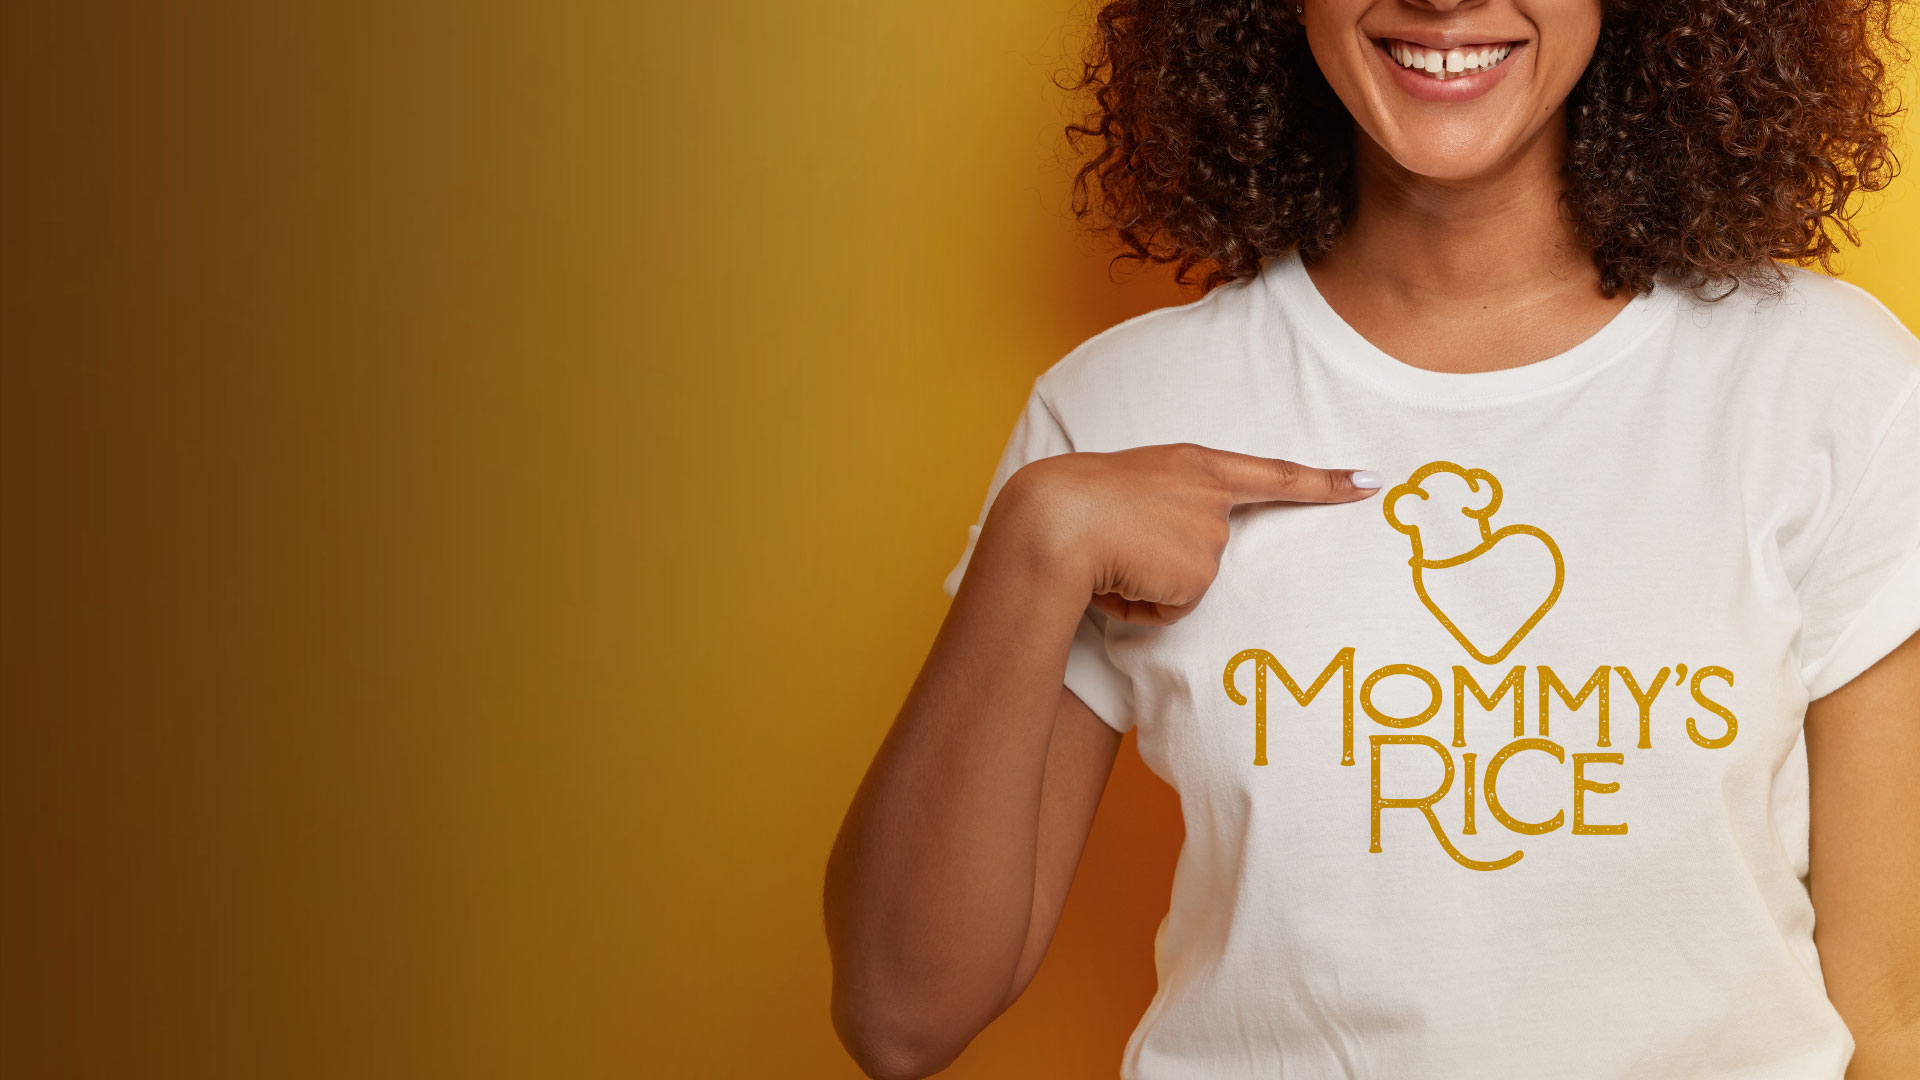 I Mean It - Mommy's Rice - Banner